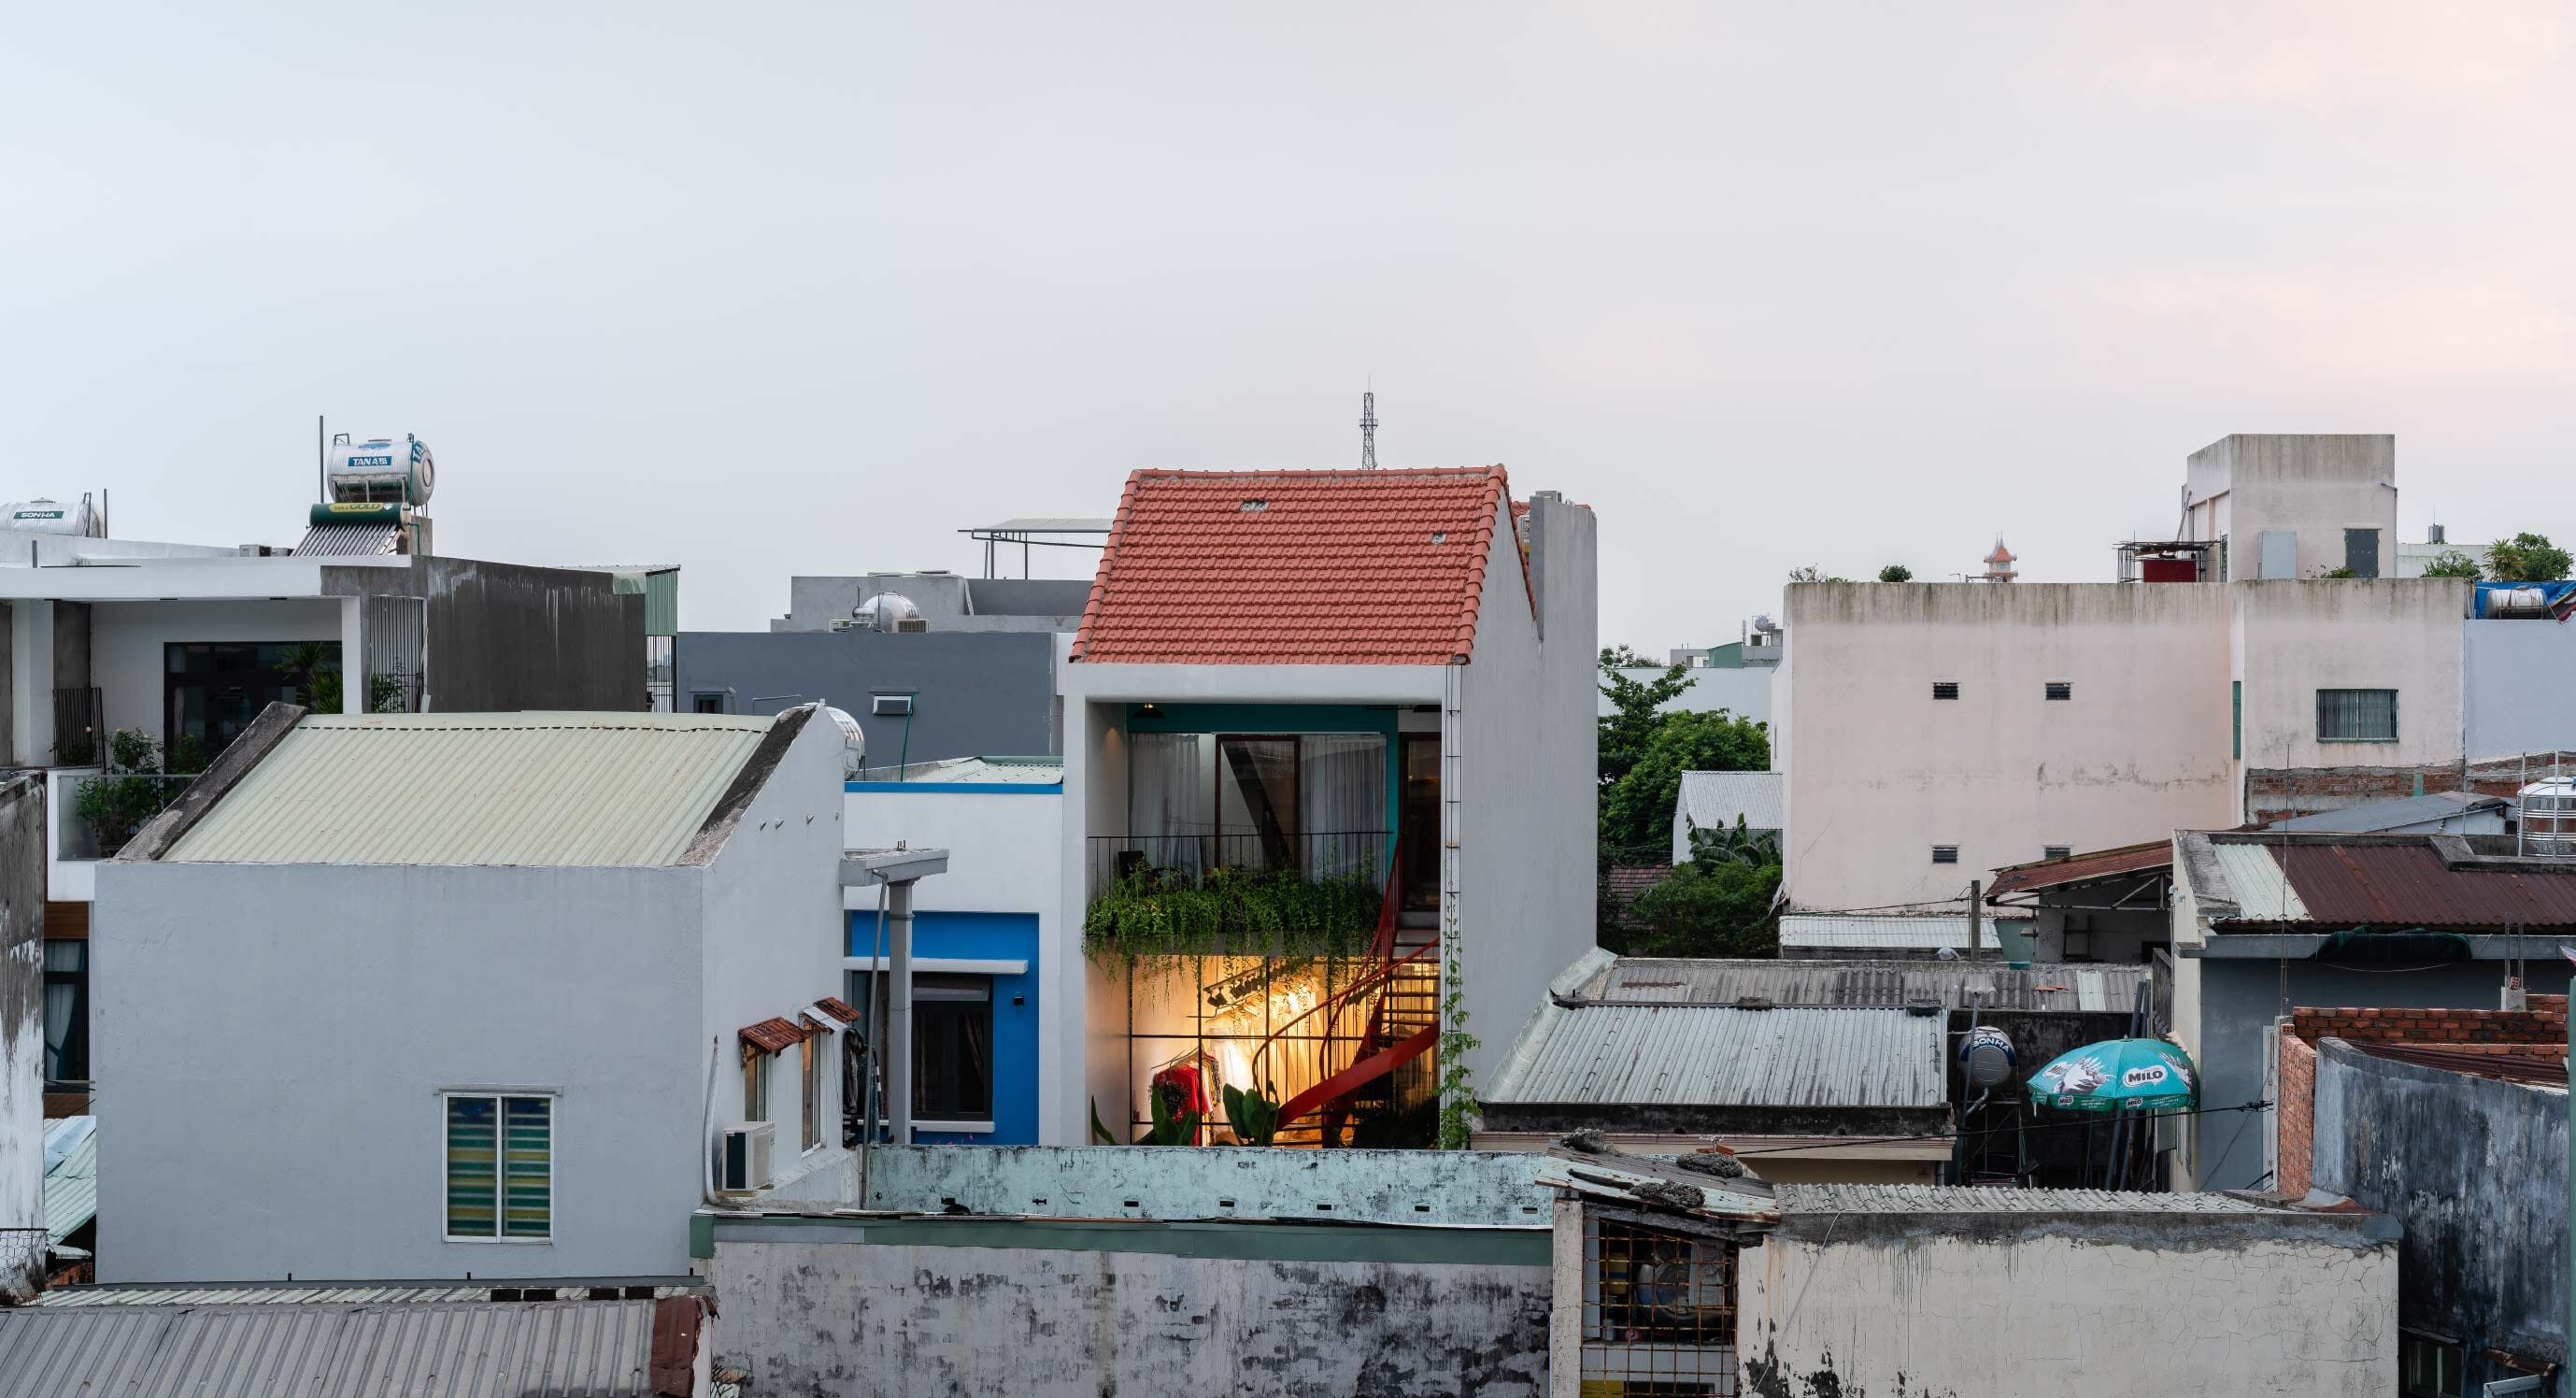 Olwen Studio Seamlessly Combines Studio Space With Private Quarters